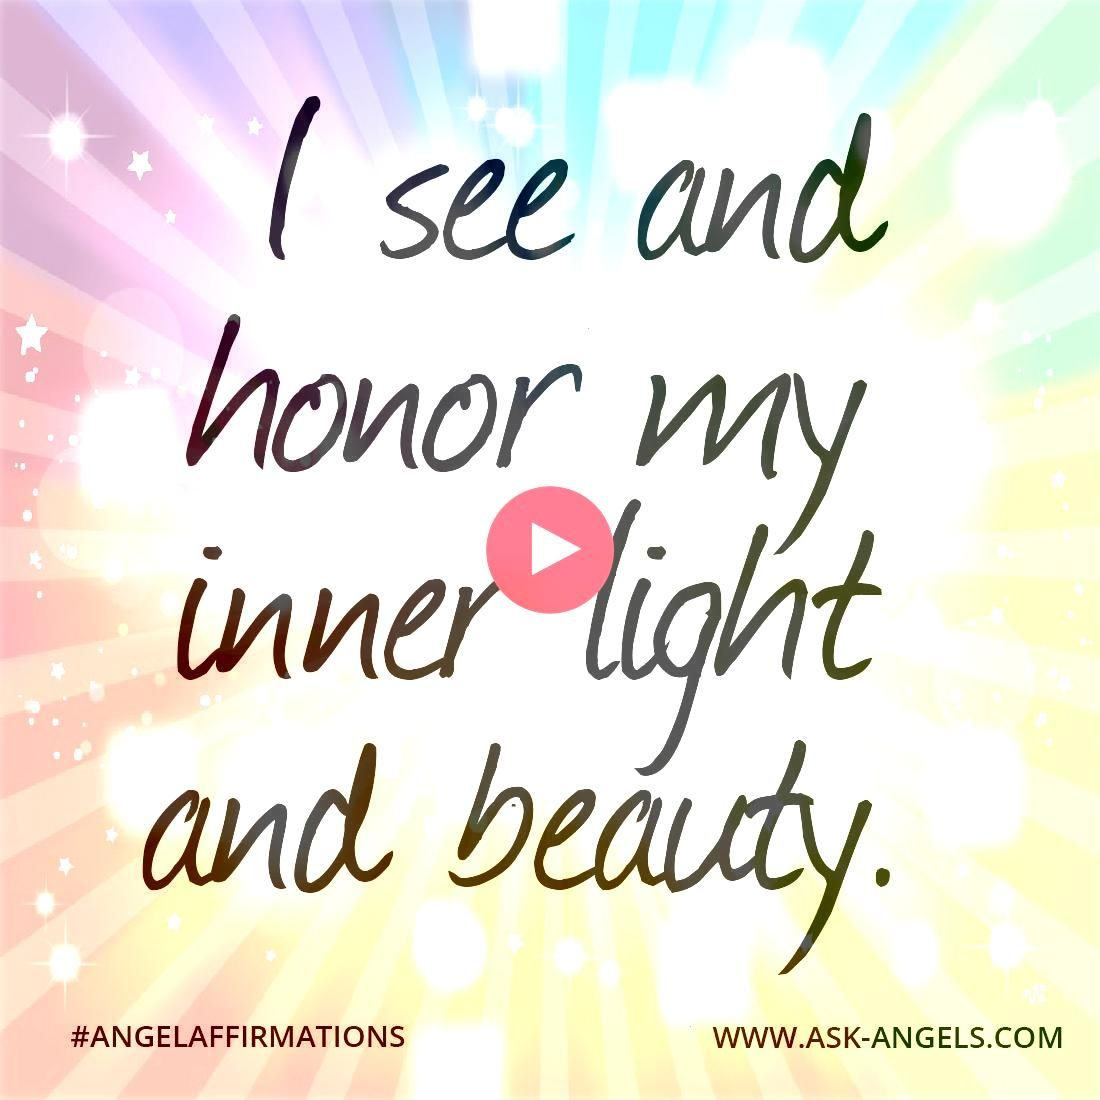 see and honor my inner light and beauty Beauty Positive AffirmationsI see and honor my inner light and beauty Beauty Positive Affirmations My gang of gogetters needs you...